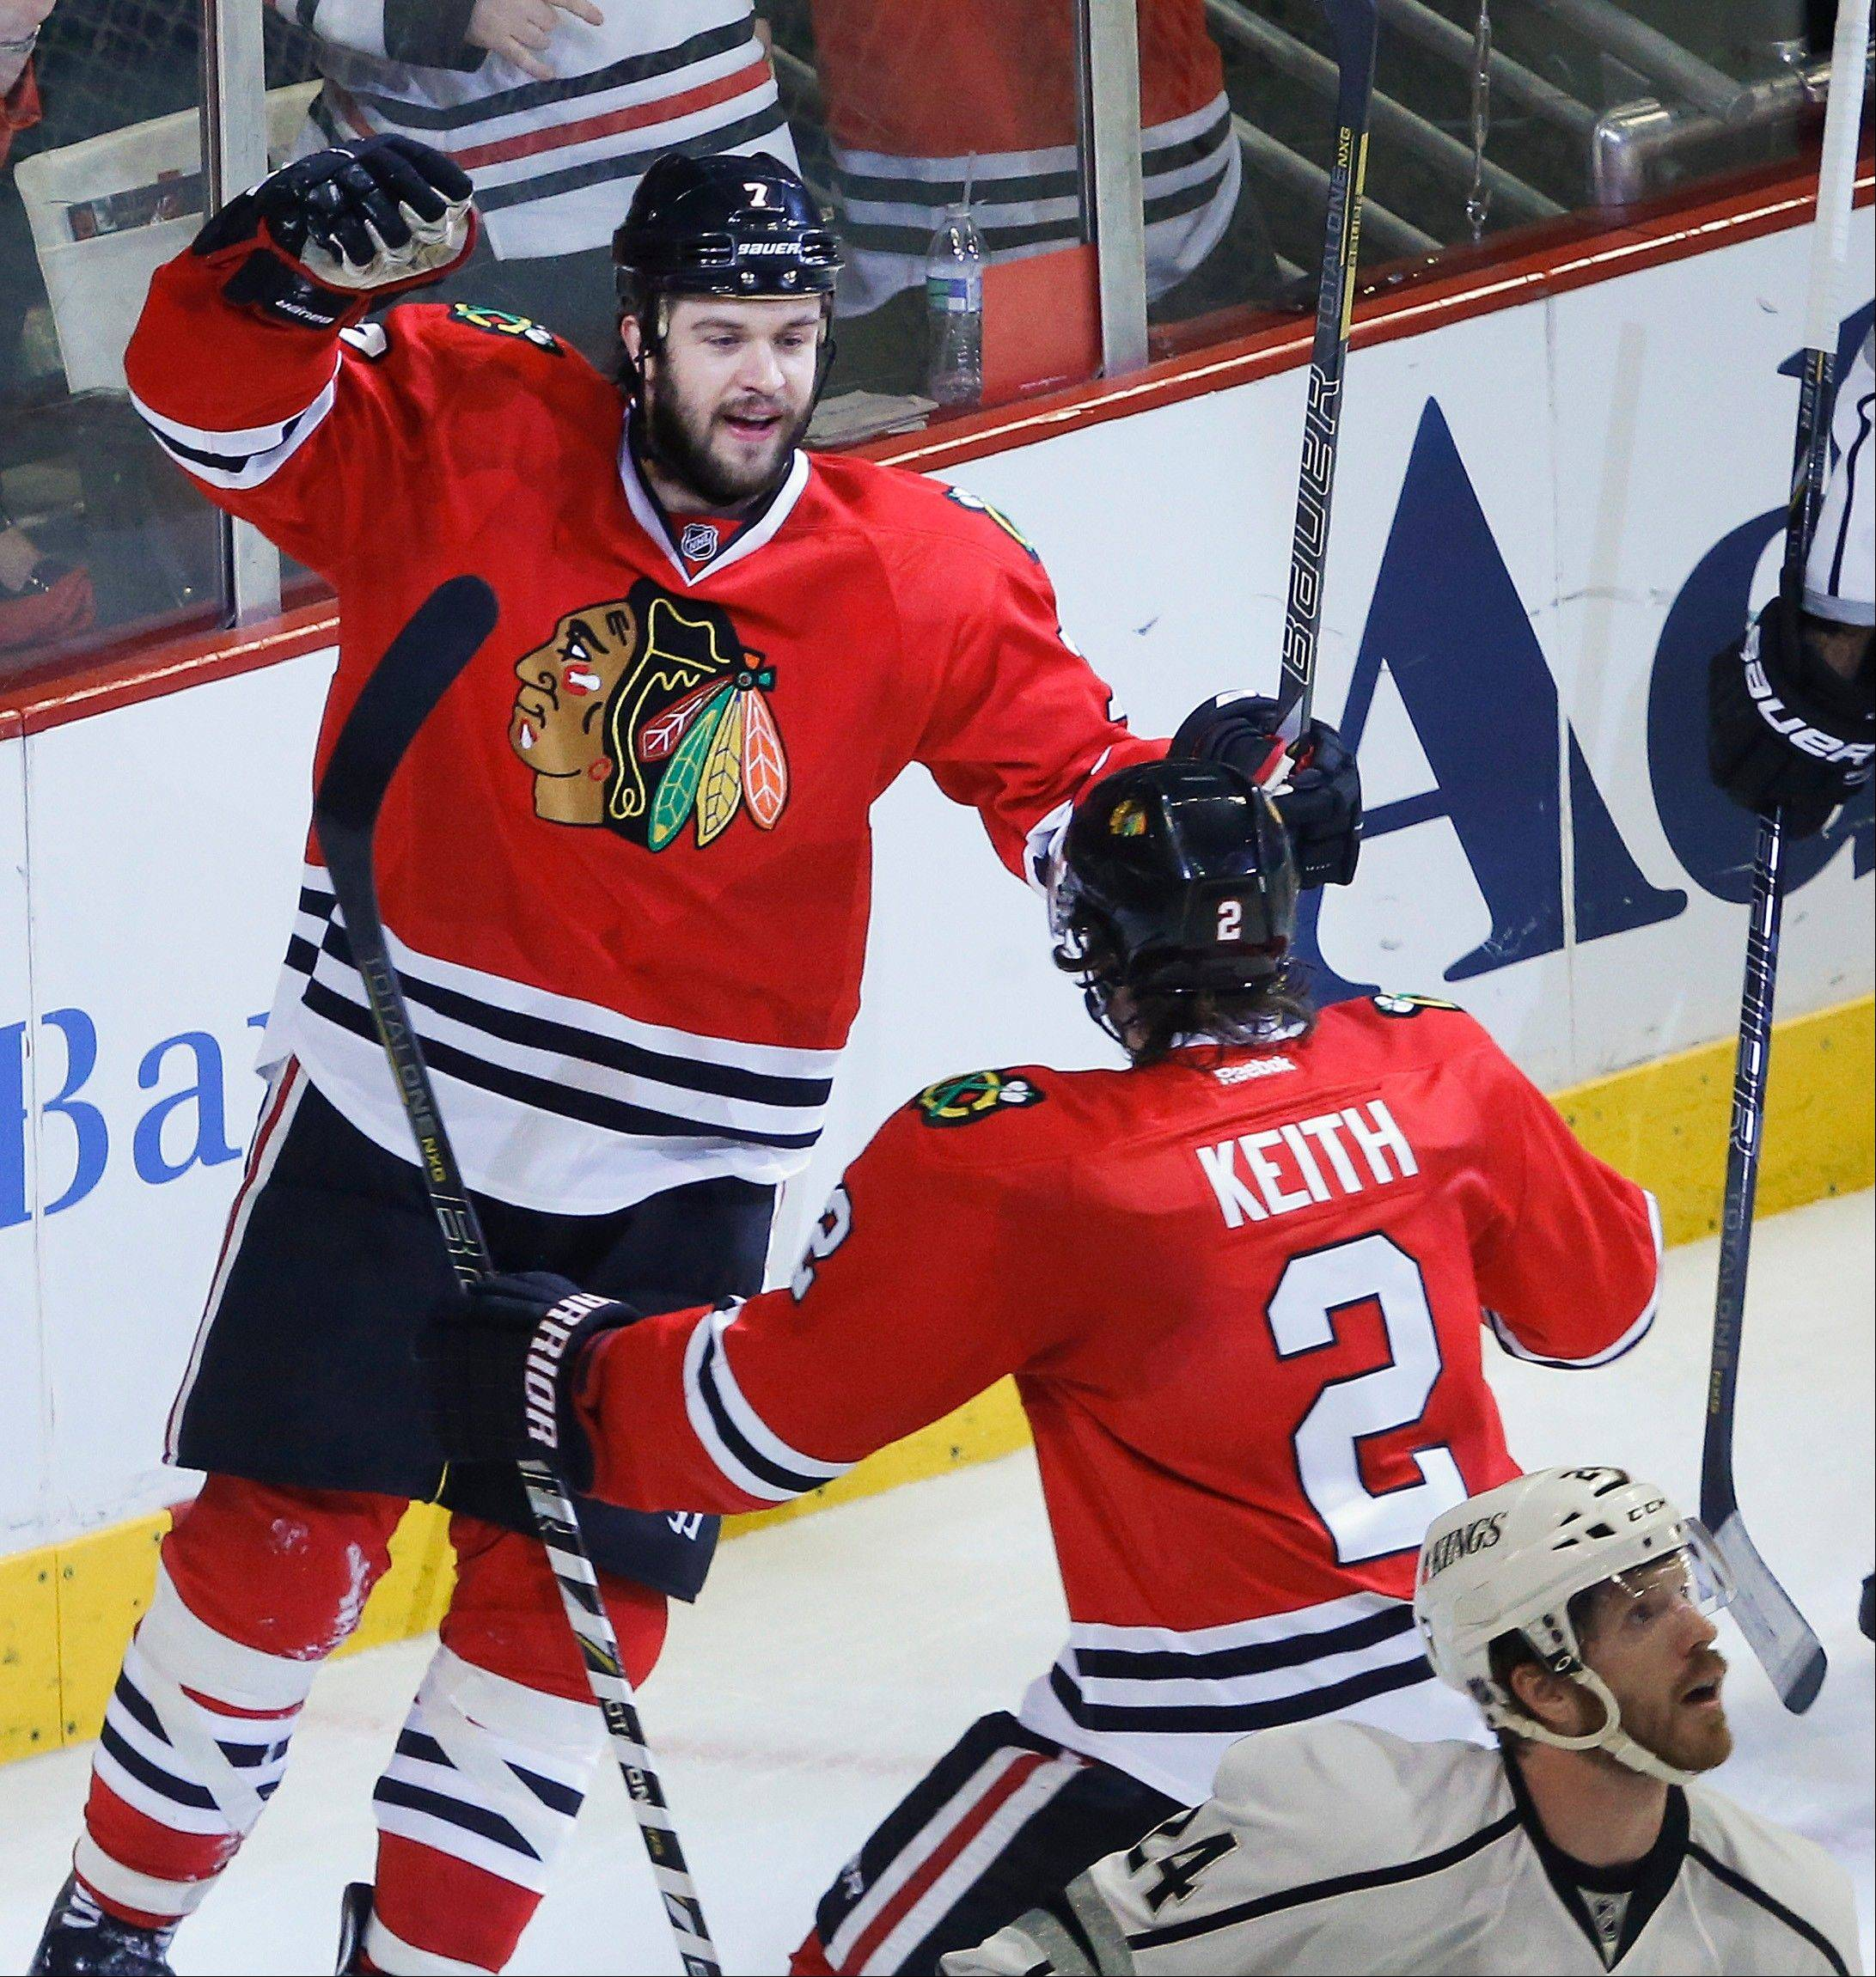 Blackhawks defenseman Brent Seabrook (7) celebrates with defenseman Duncan Keith (2) after scoring a goal against the Los Angeles Kings during the first period in Game 2 of the NHL hockey Stanley Cup Western Conference finals Sunday, June 2, 2013 in Chicago.